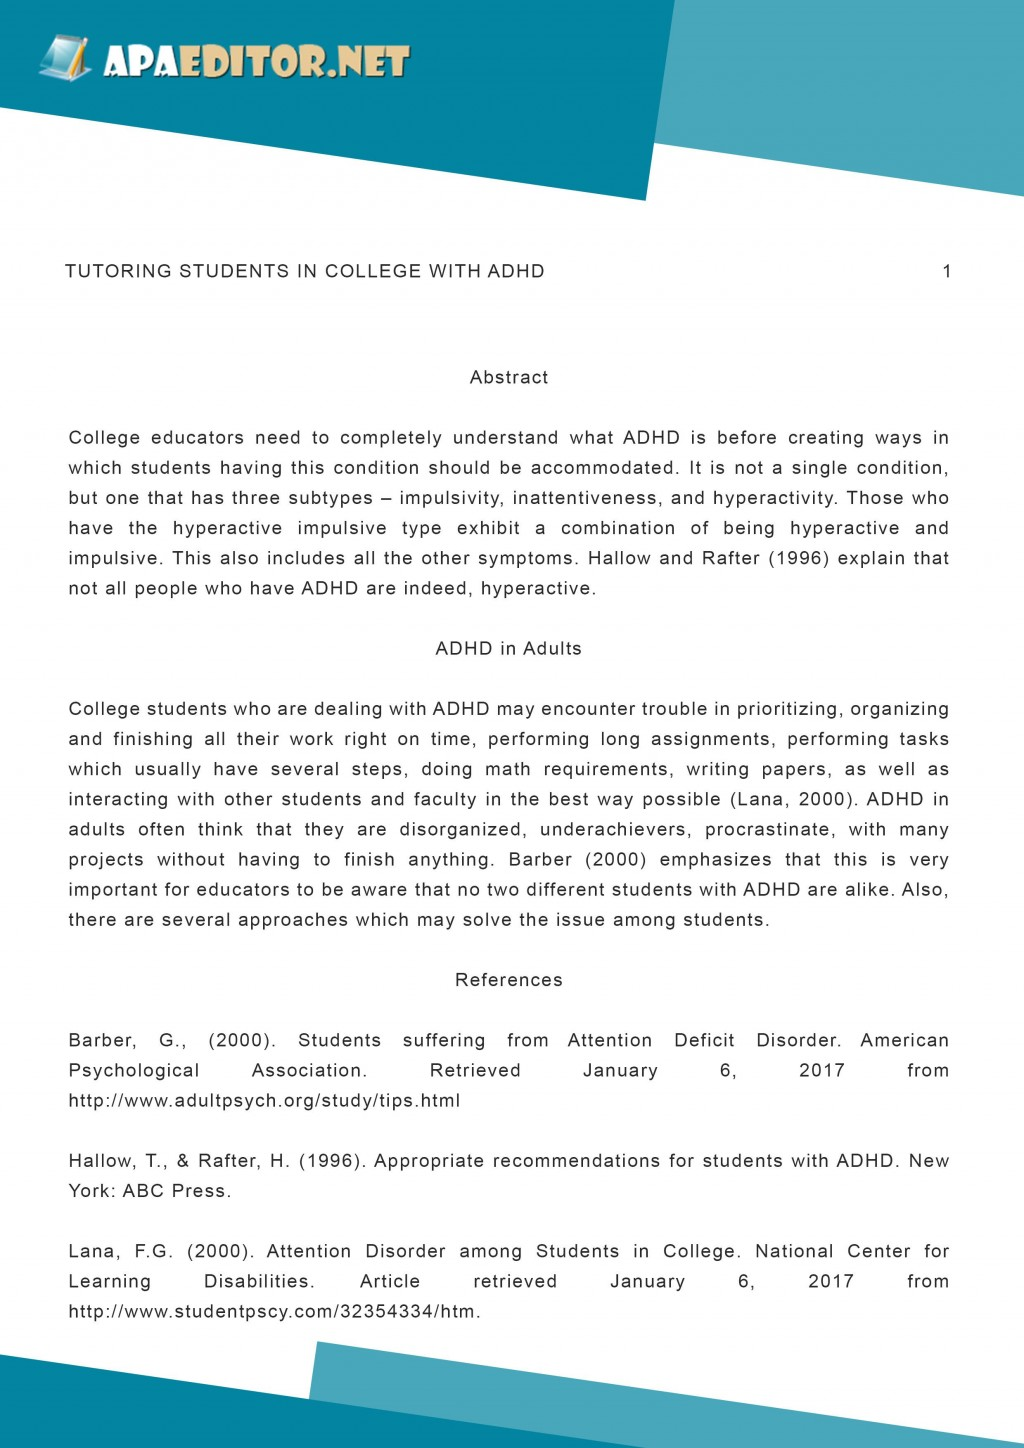 014 Conclusion Example For Assignment Outstanding Pin By Apa Samples On Research Paper Sample Of Impressive Adhd Large